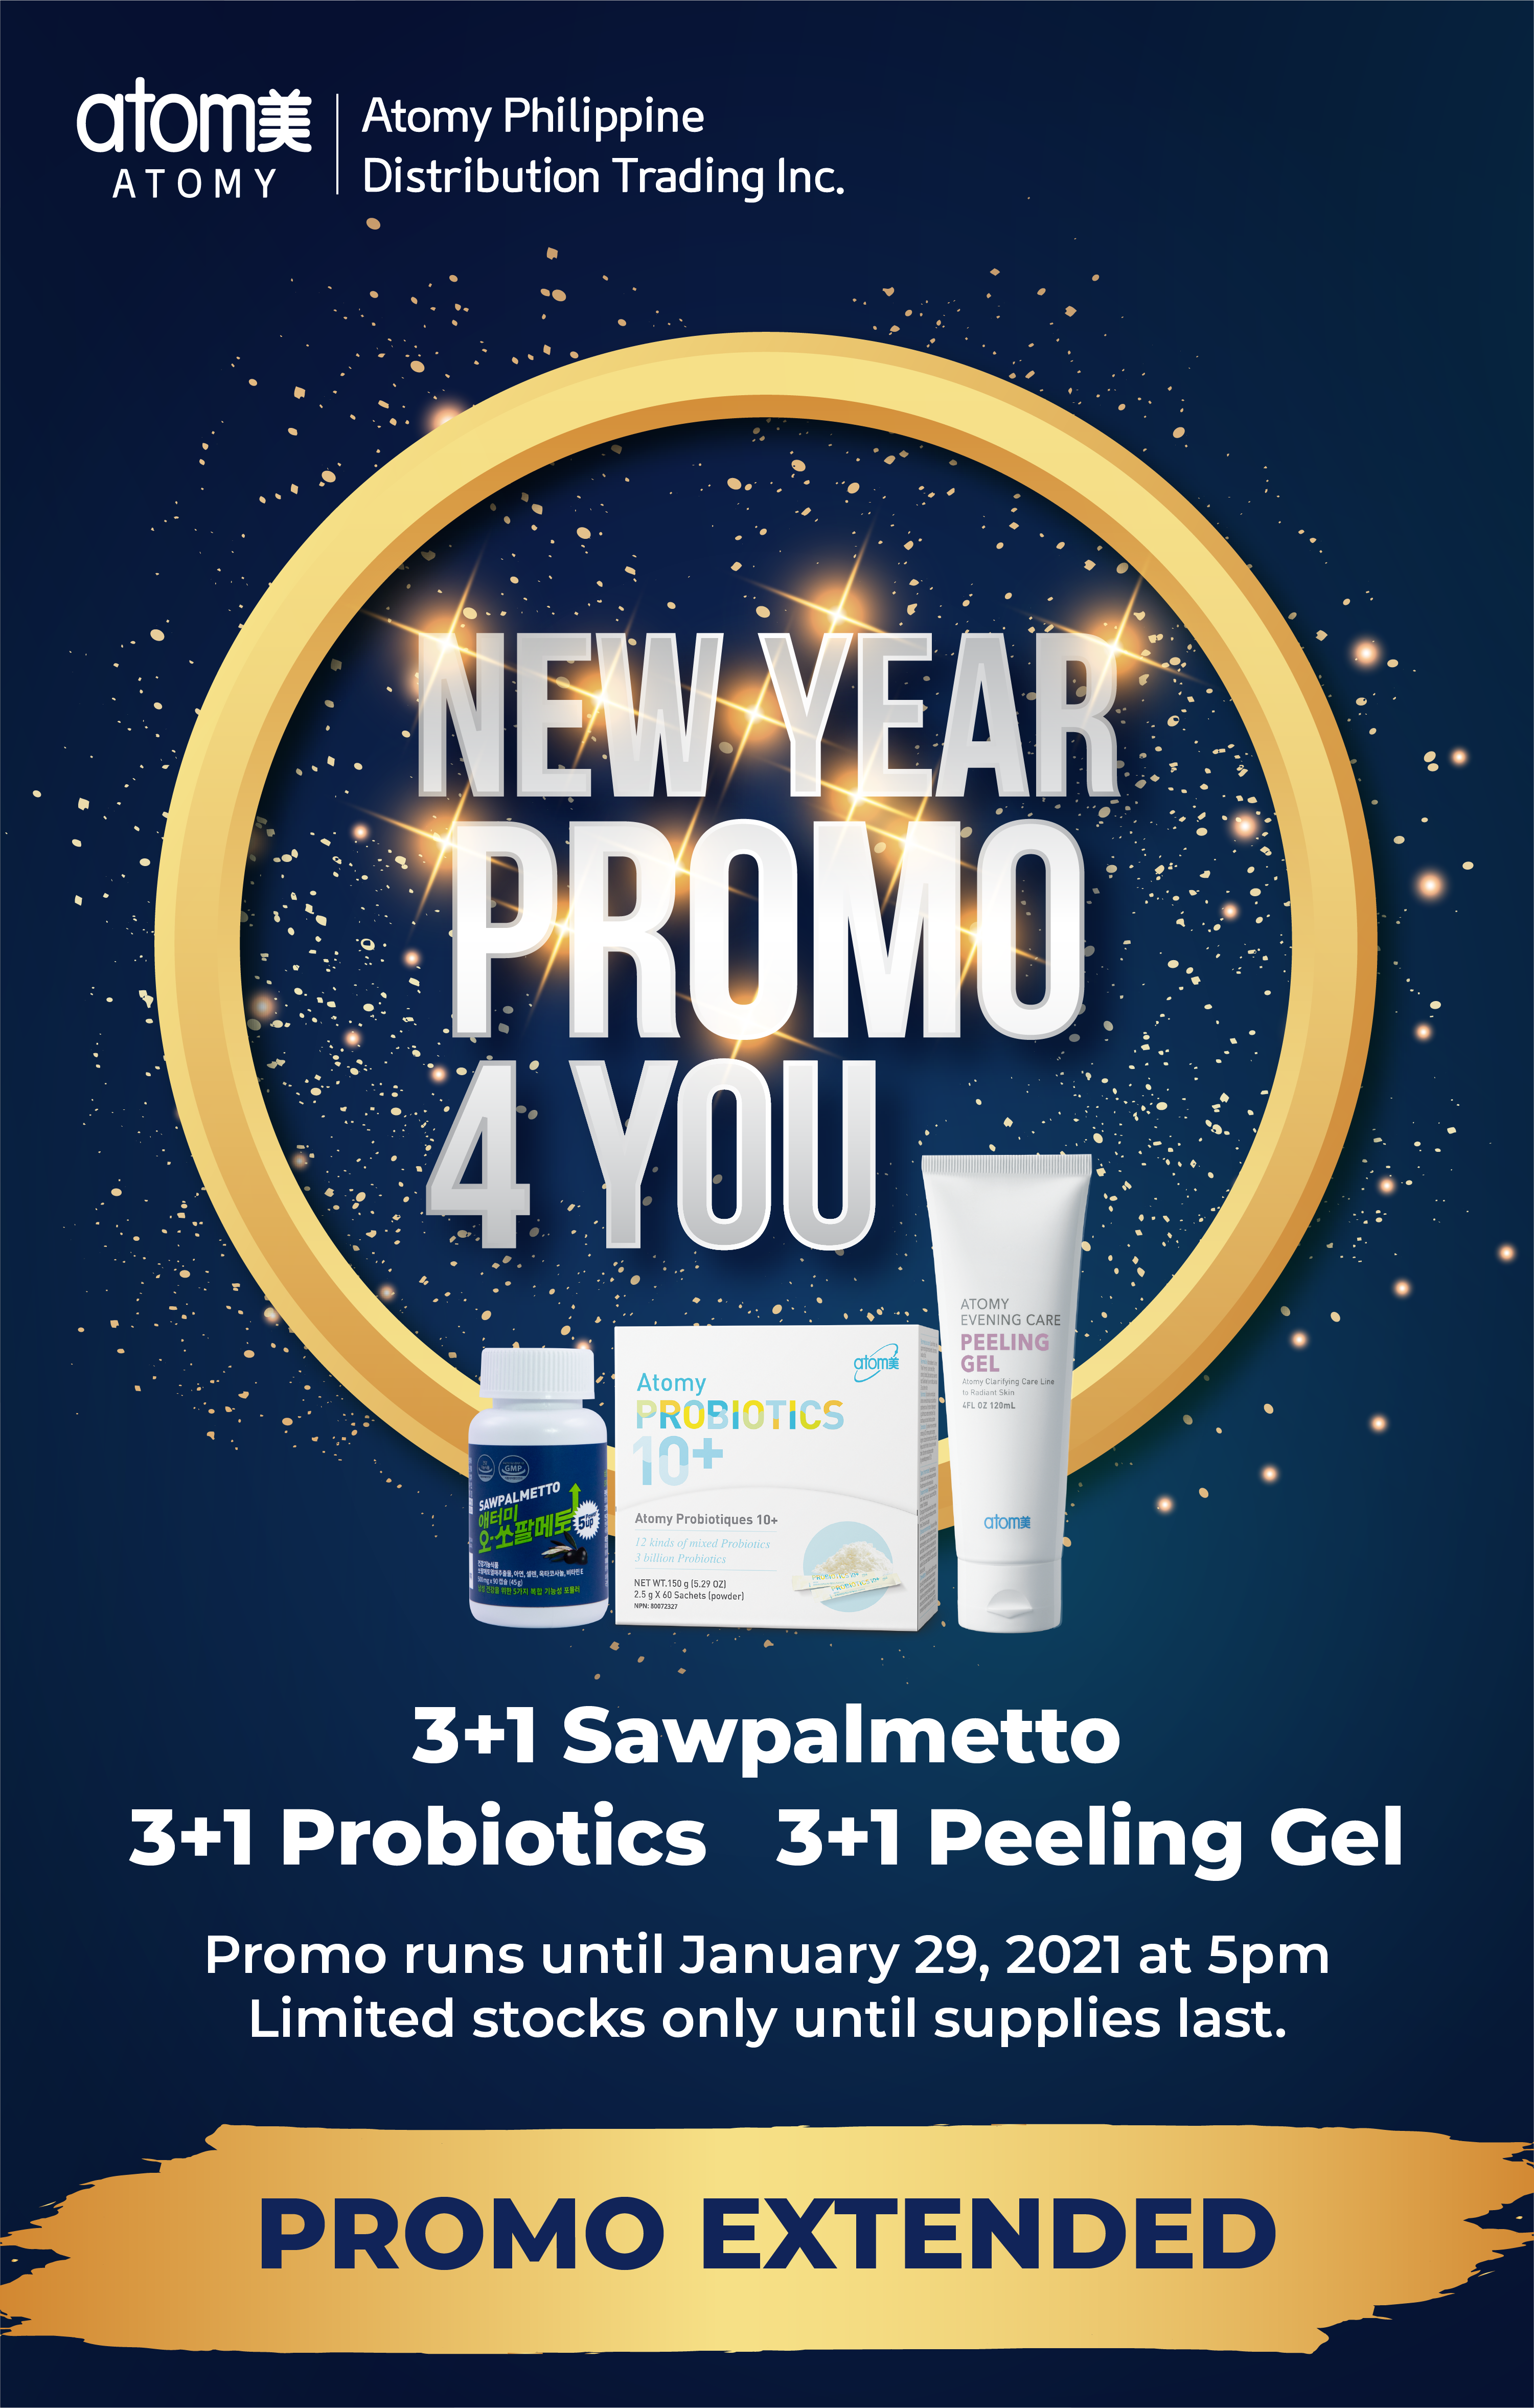 Special Announcement - Ney year Promo 4 you EXTENDED